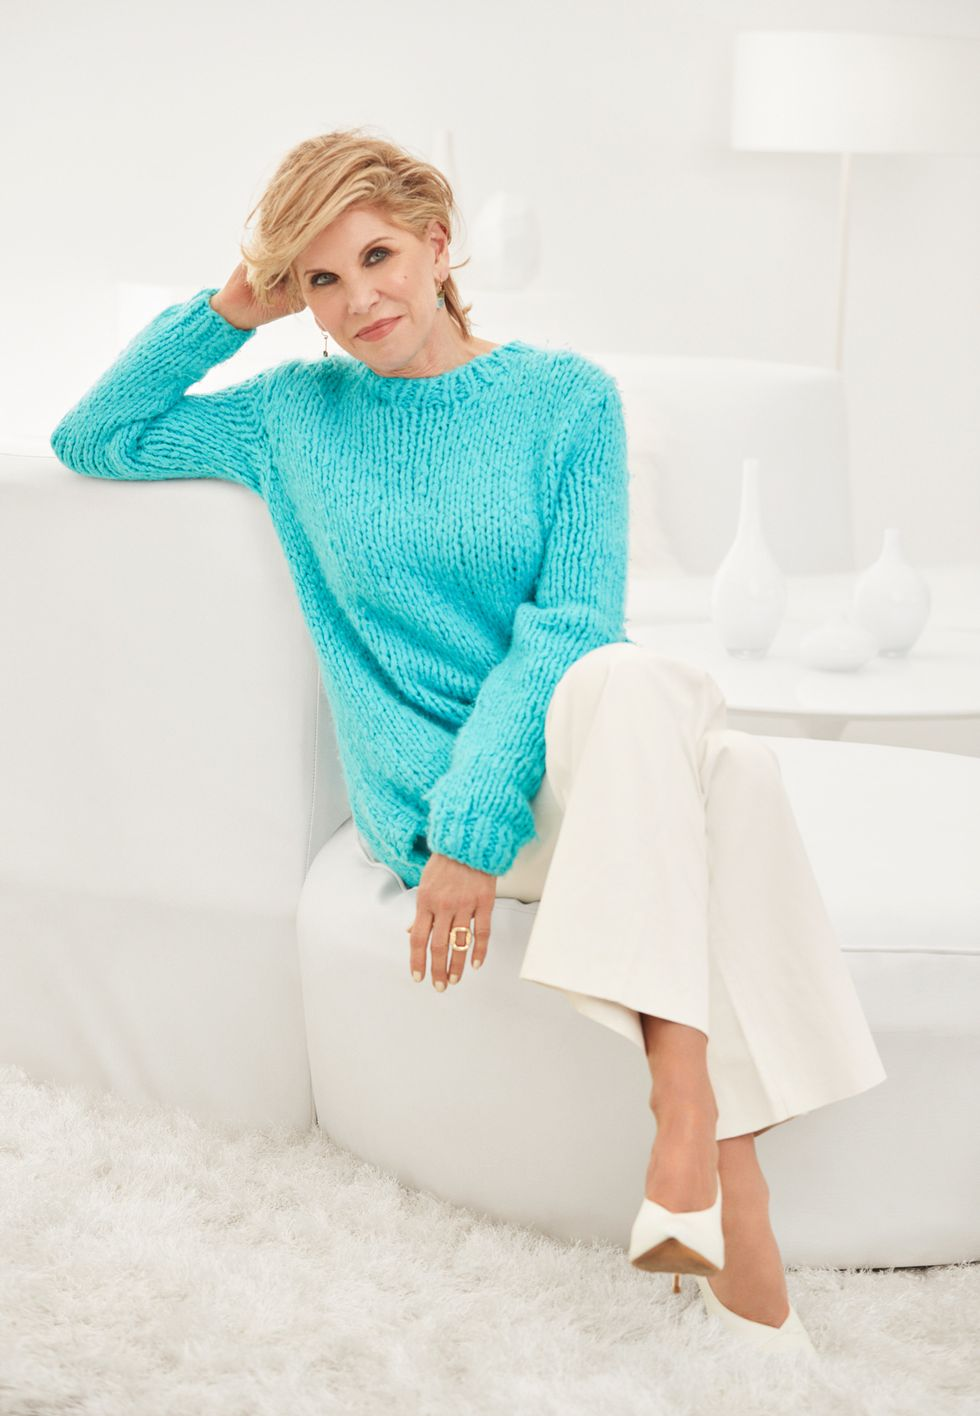 Christine Baranski in teal blue sweater and white pants.